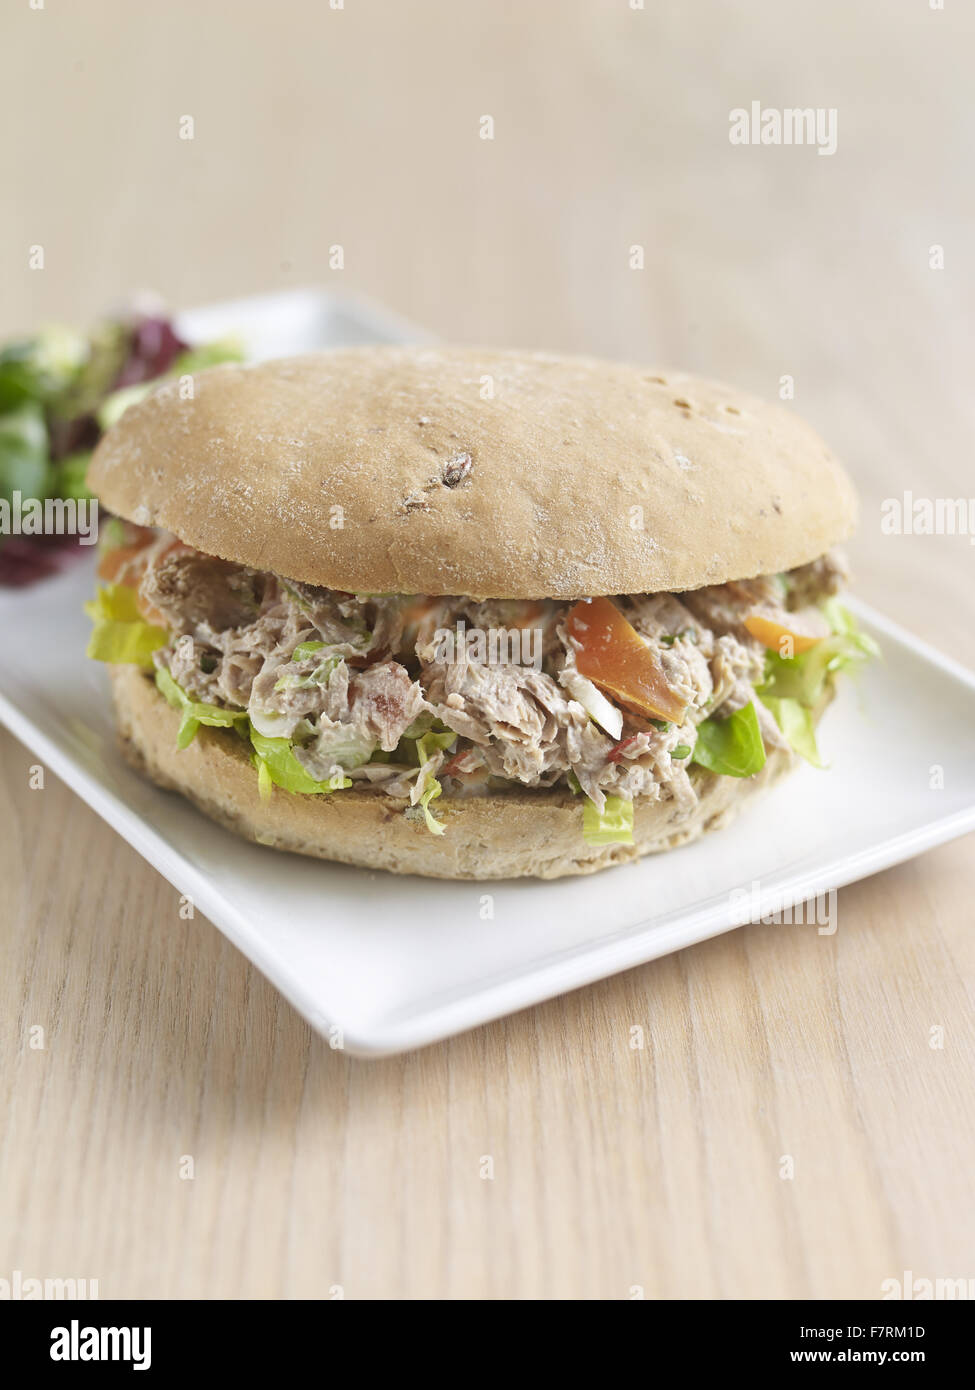 Tuna and lime roll photographed for the 2015 National Trust Summer Cookbook. - Stock Image